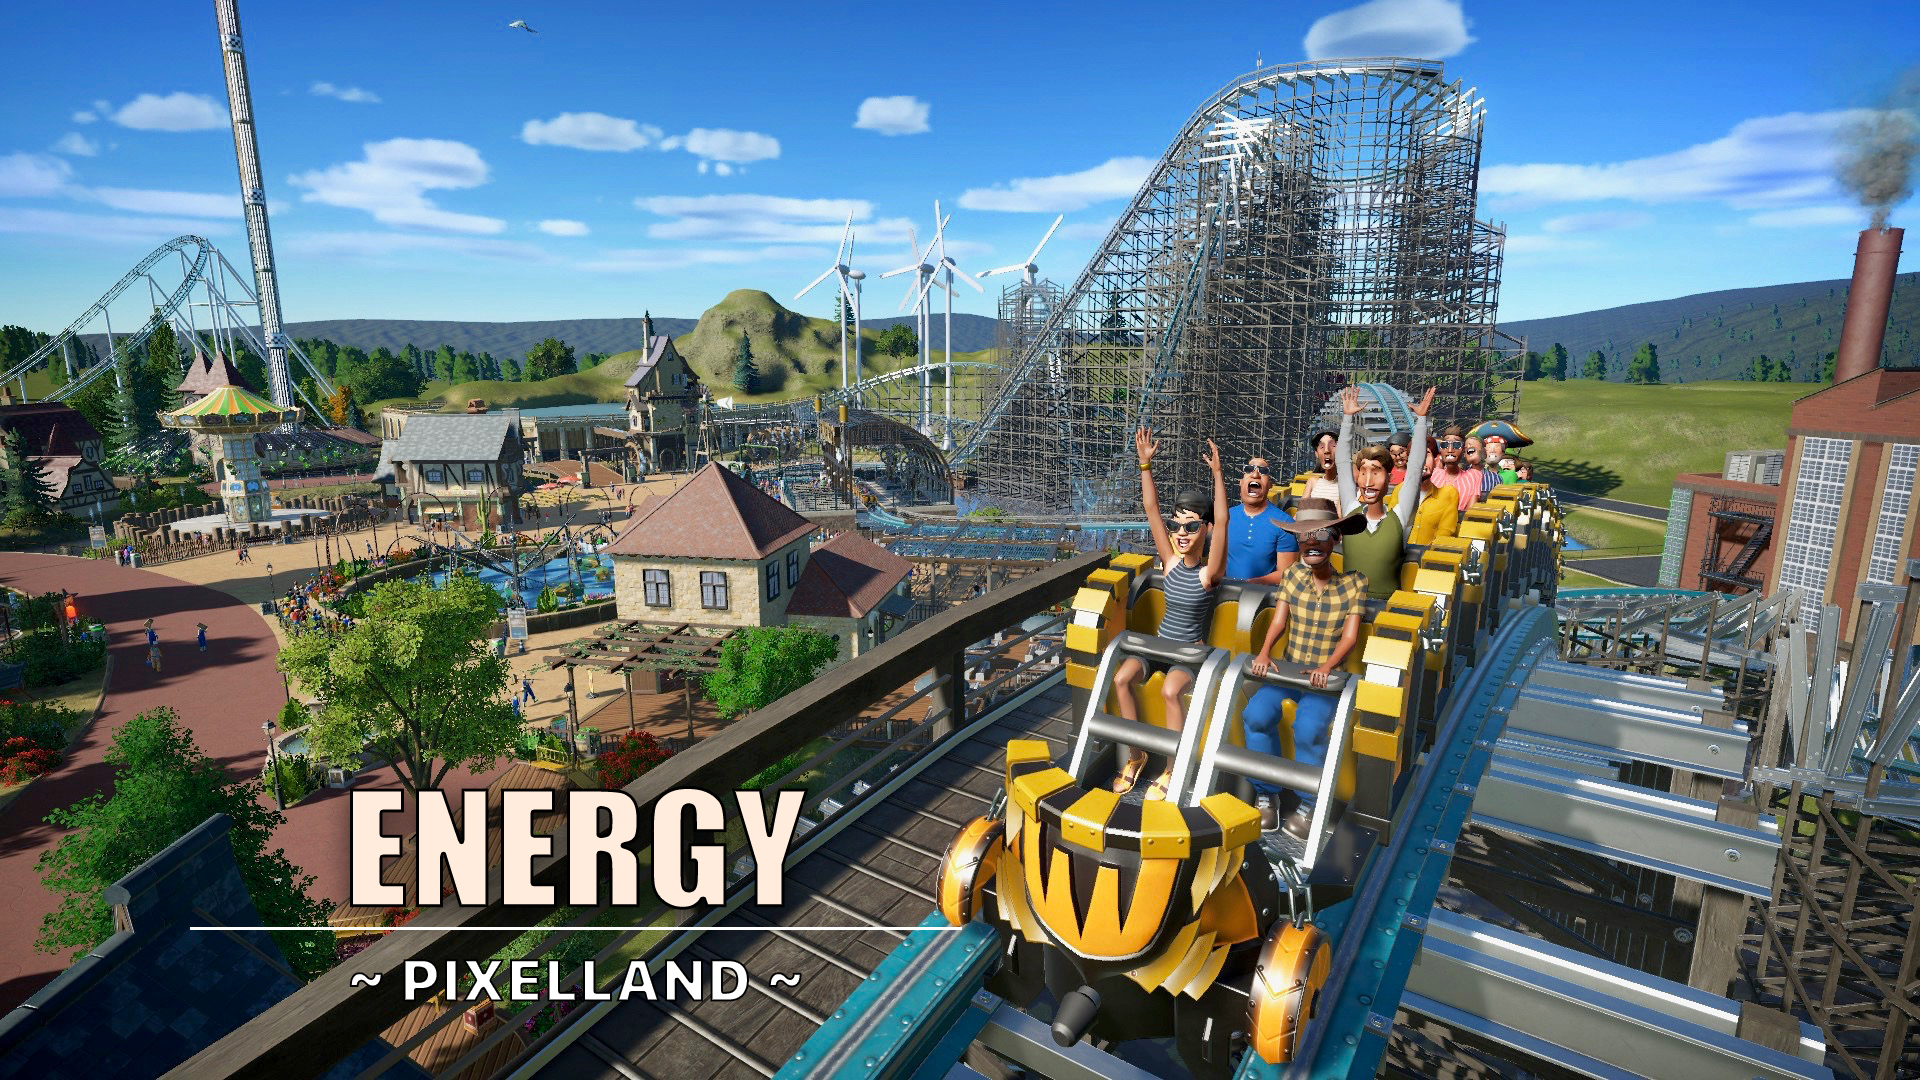 Energy hybrid coaster by PixelWess89